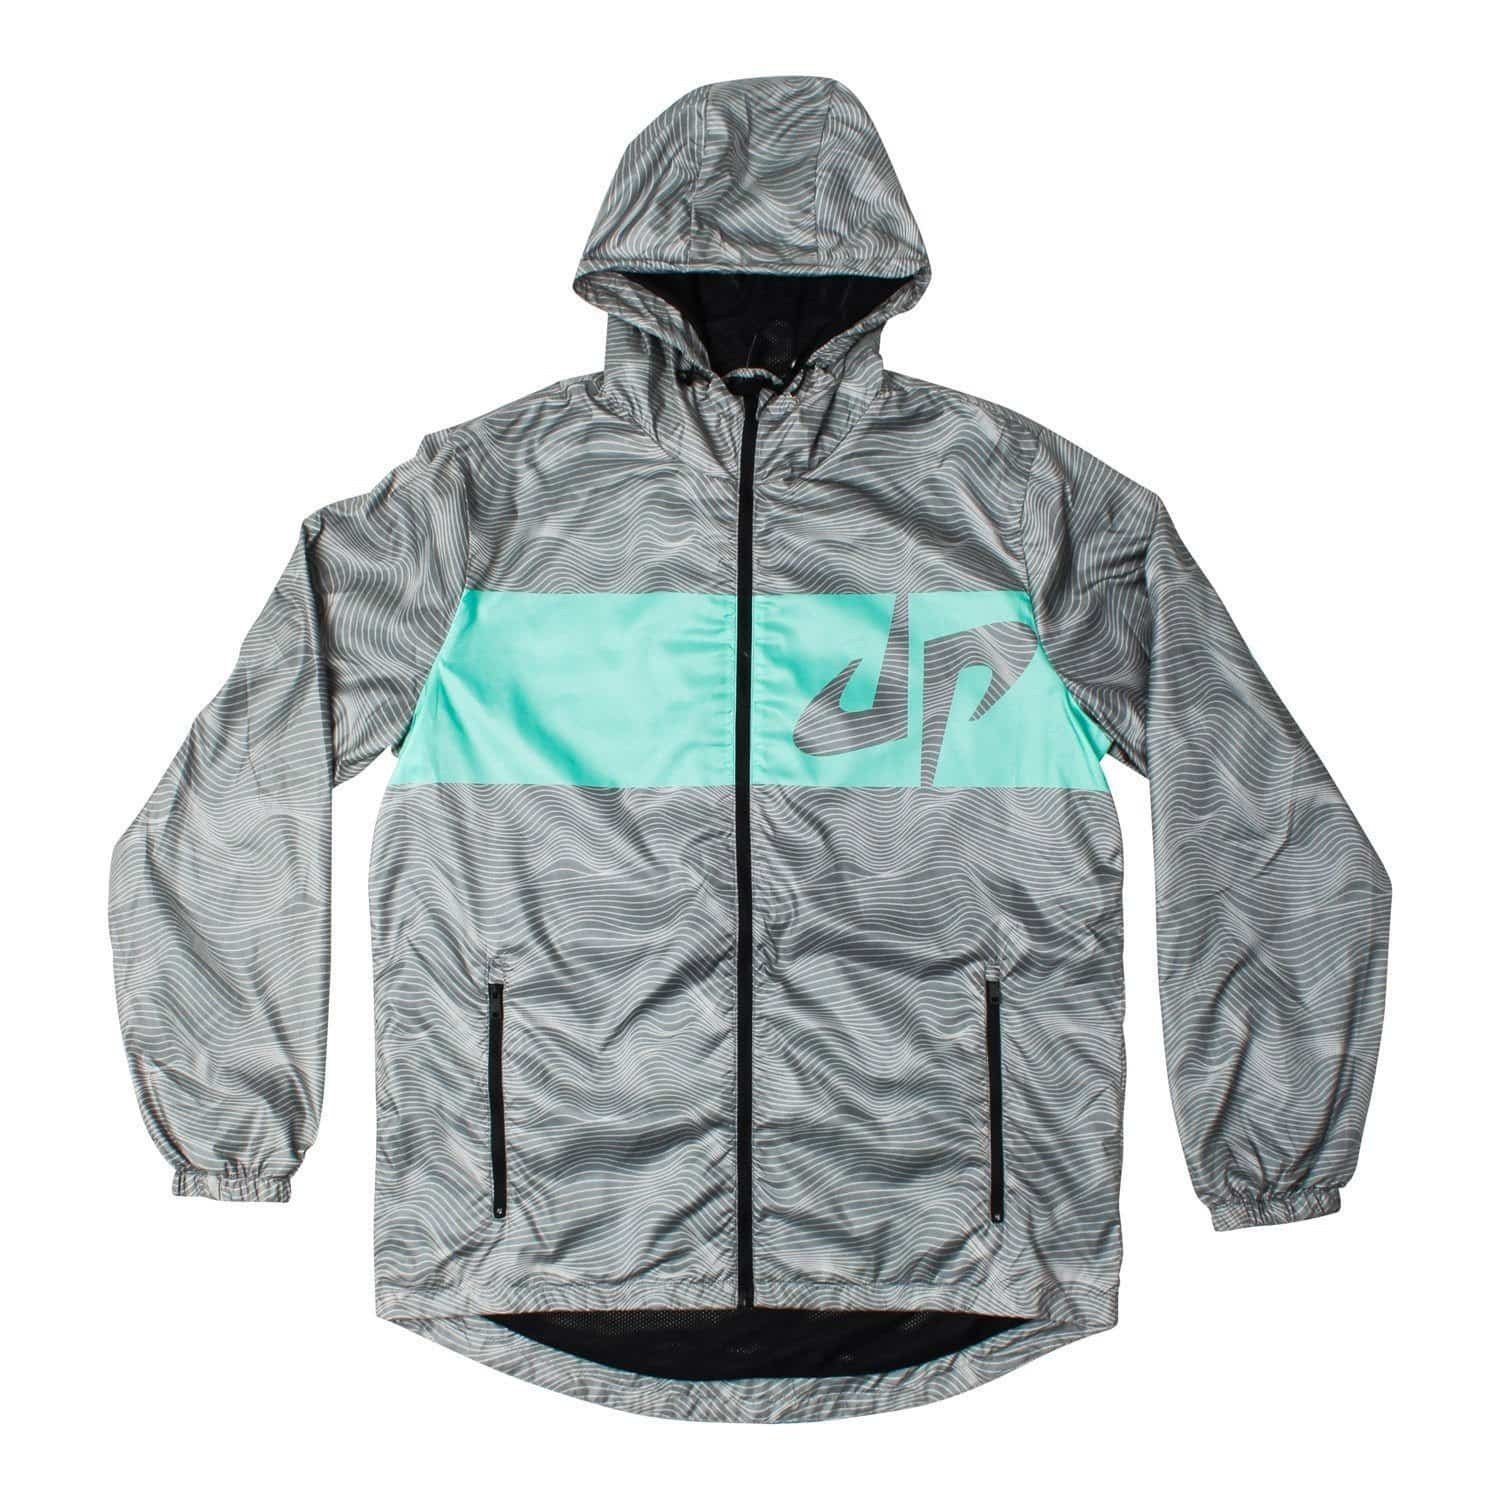 Battles Lightweight Tech Jacket